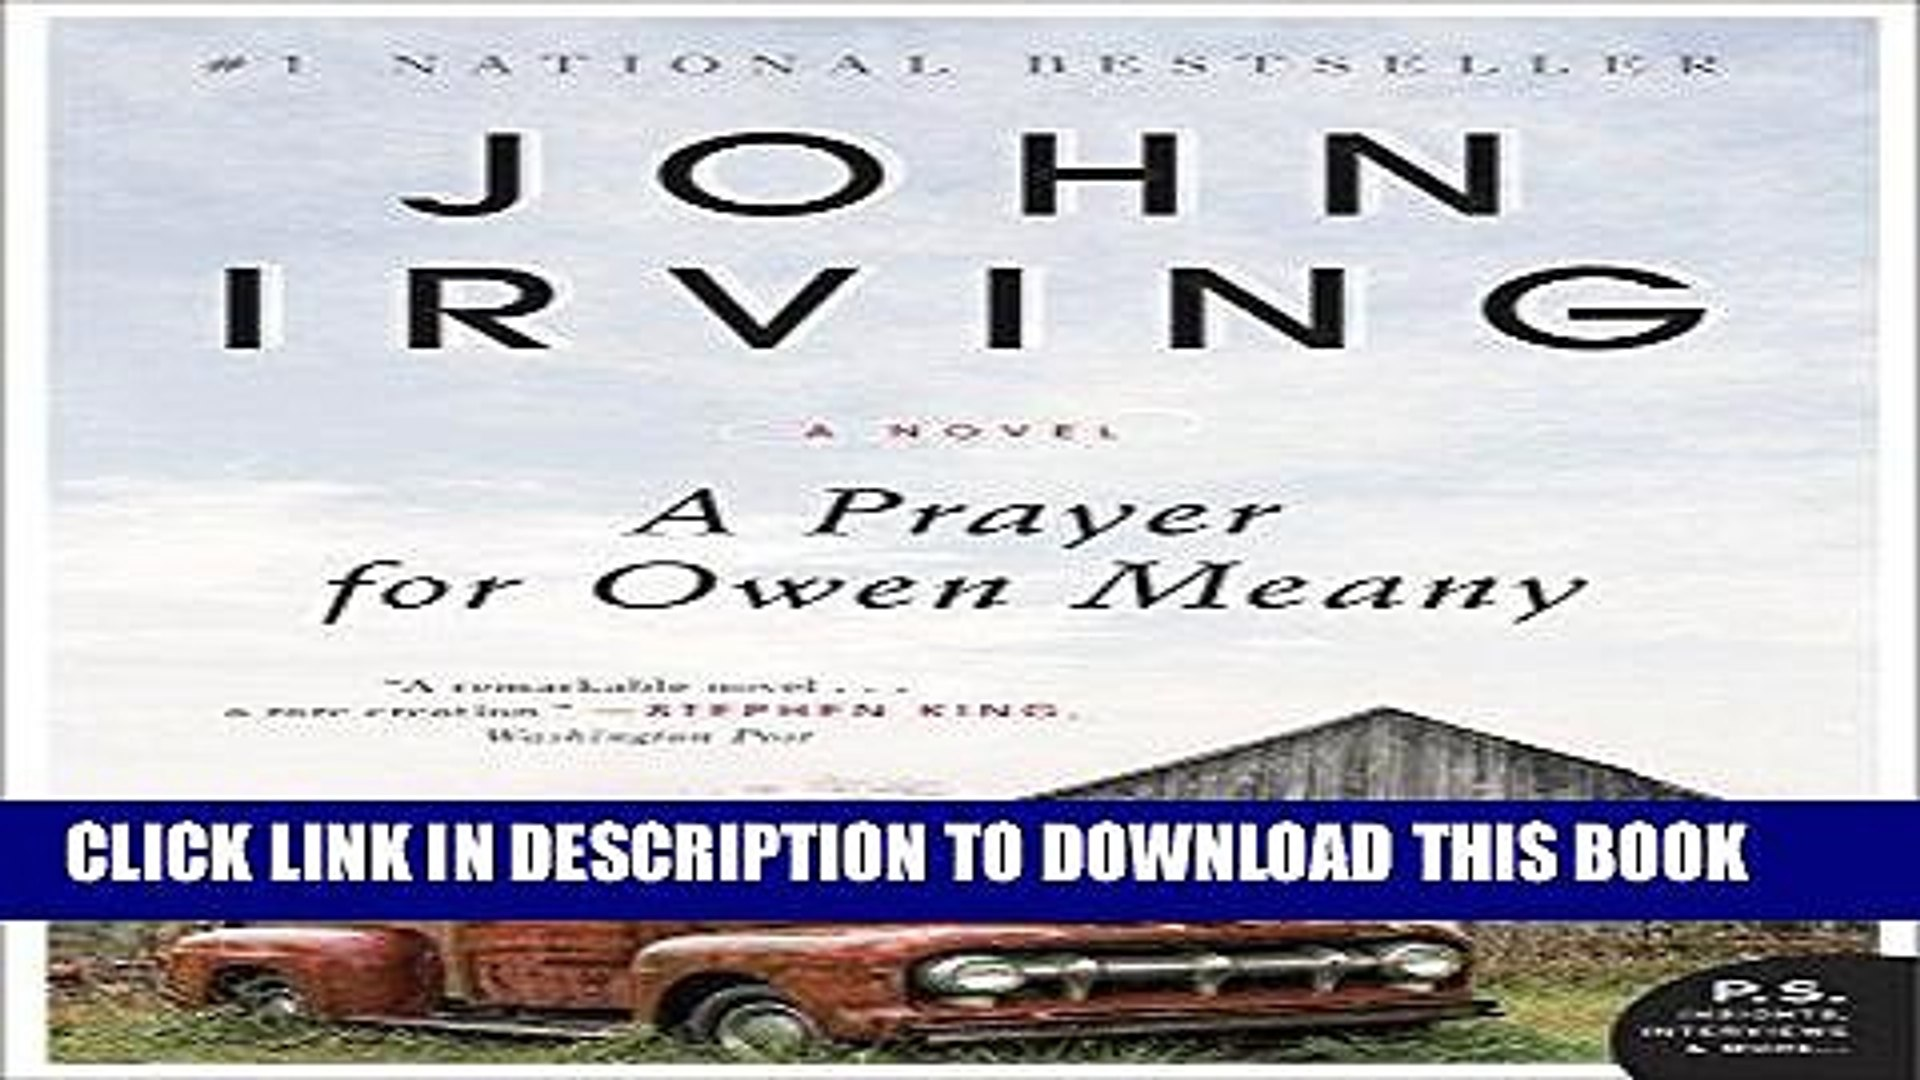 a prayer for owen meany pdf free download